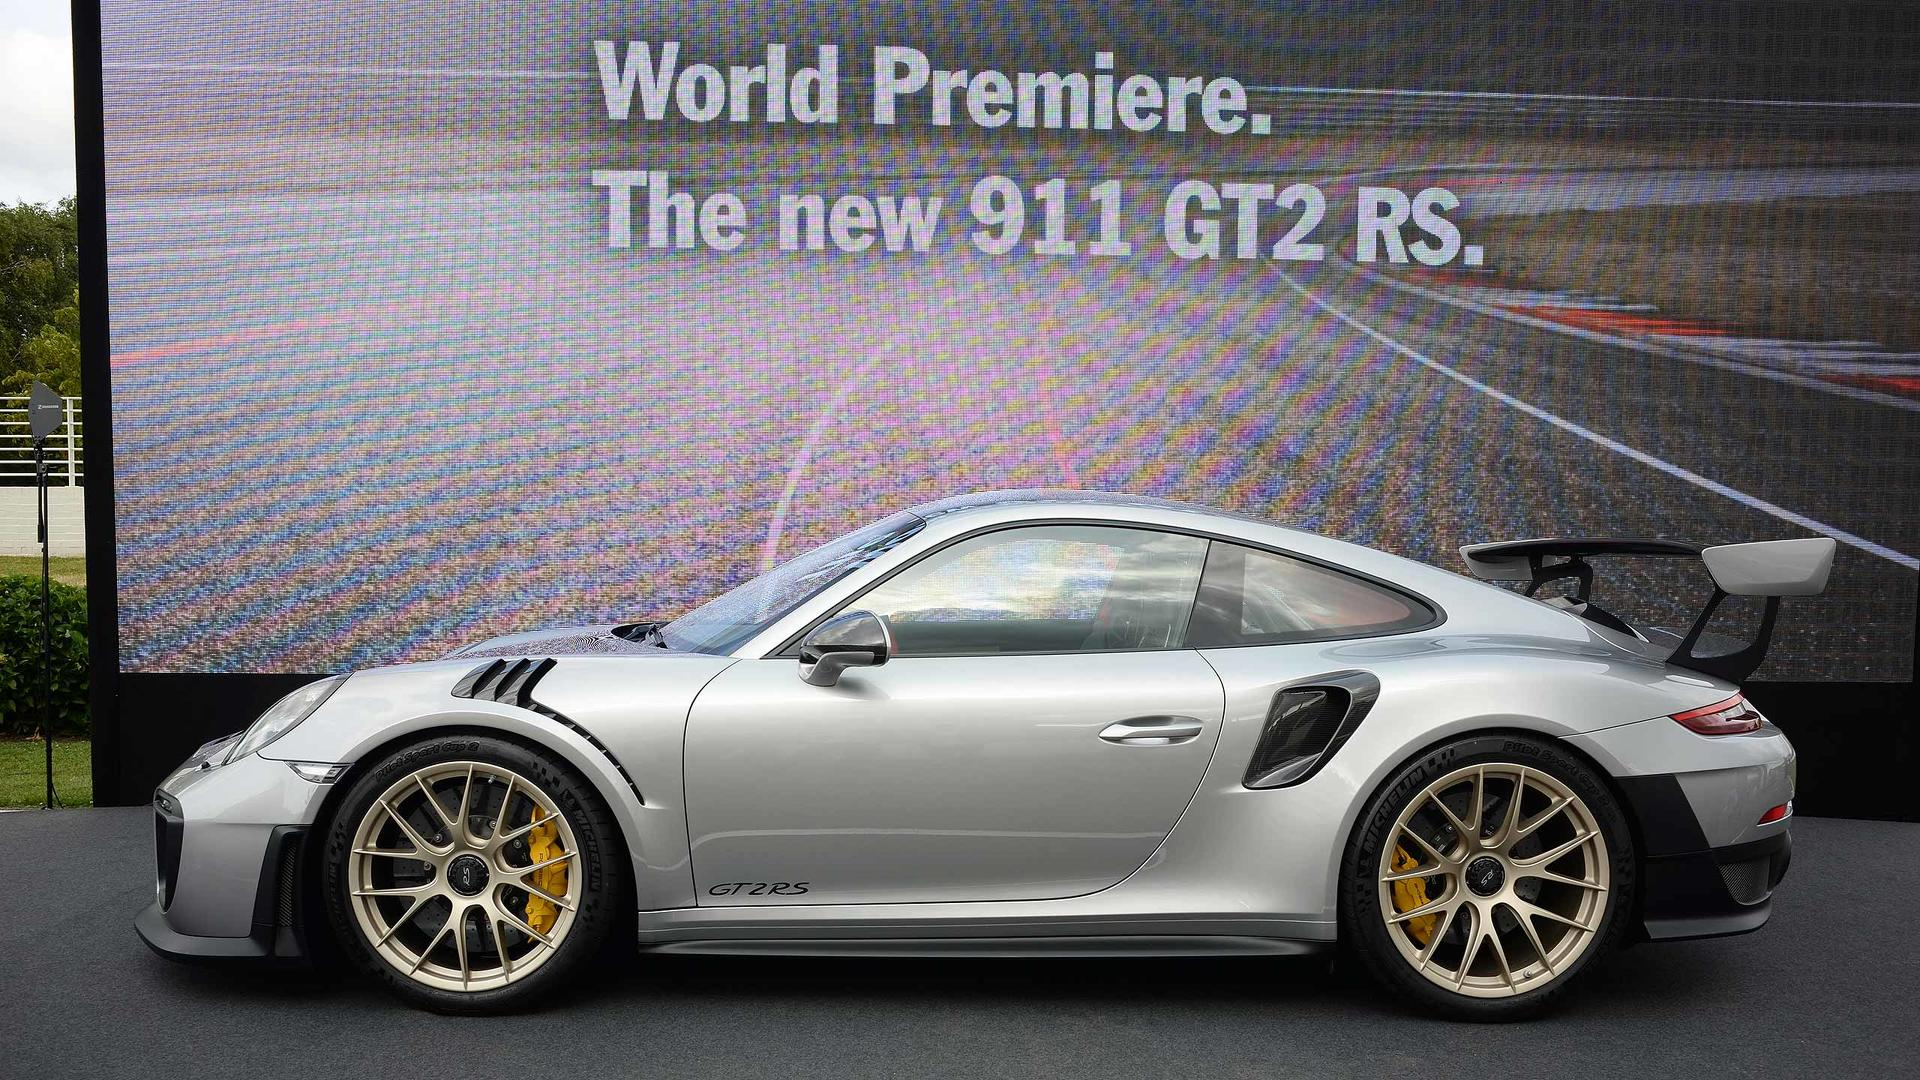 2018-porsche-911-gt2-rs-at-2017-goodwood-festival-of-speed Interesting Porsche 911 Gt2 Rs Nurburgring Lap Cars Trend